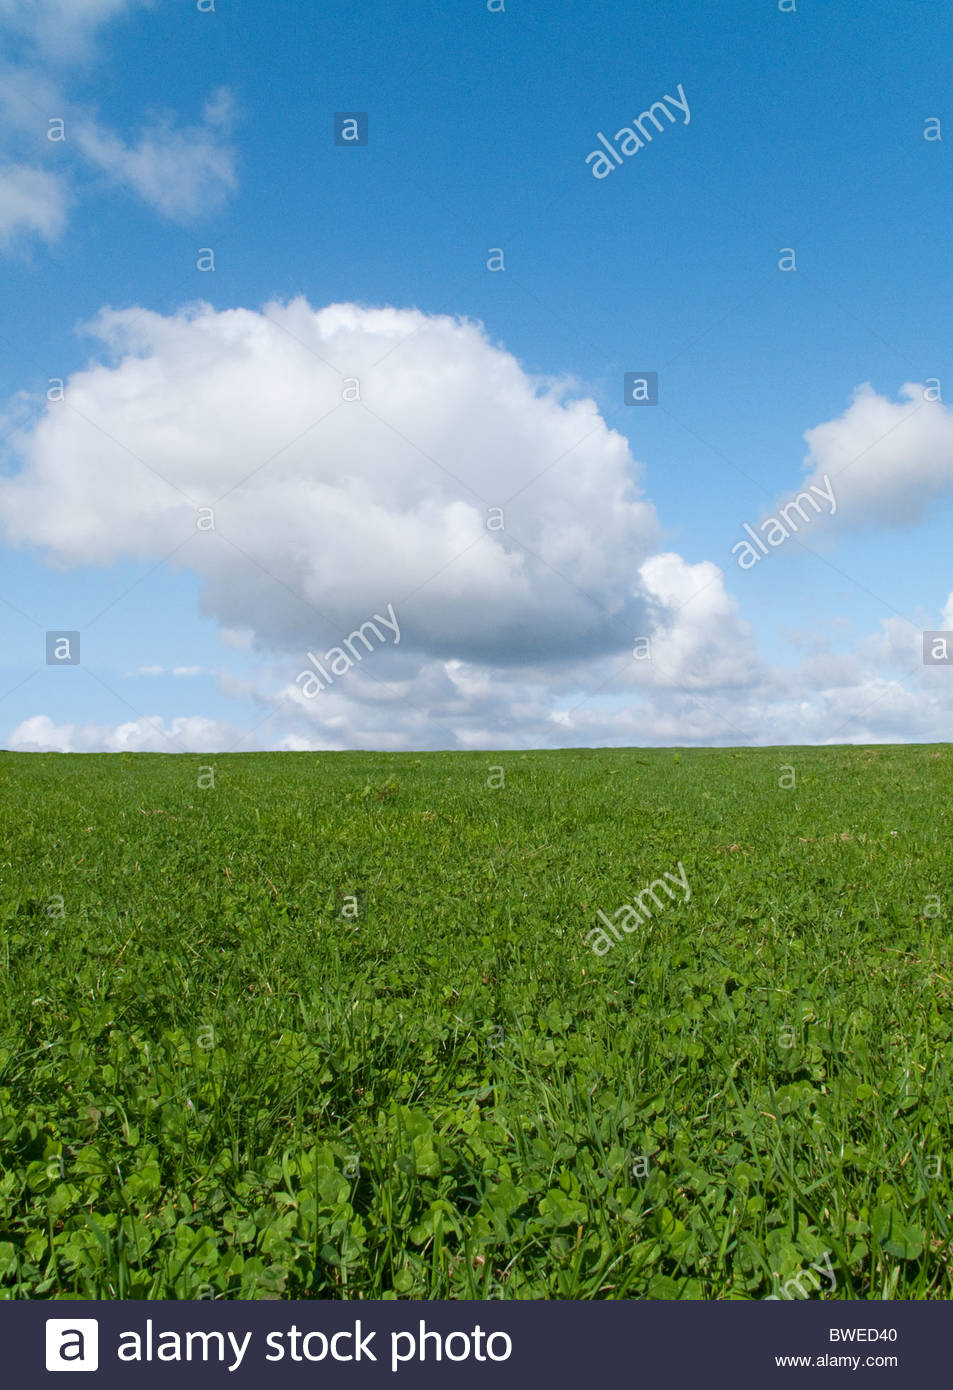 Meadow grass growing in field under blue sky - Stock Image